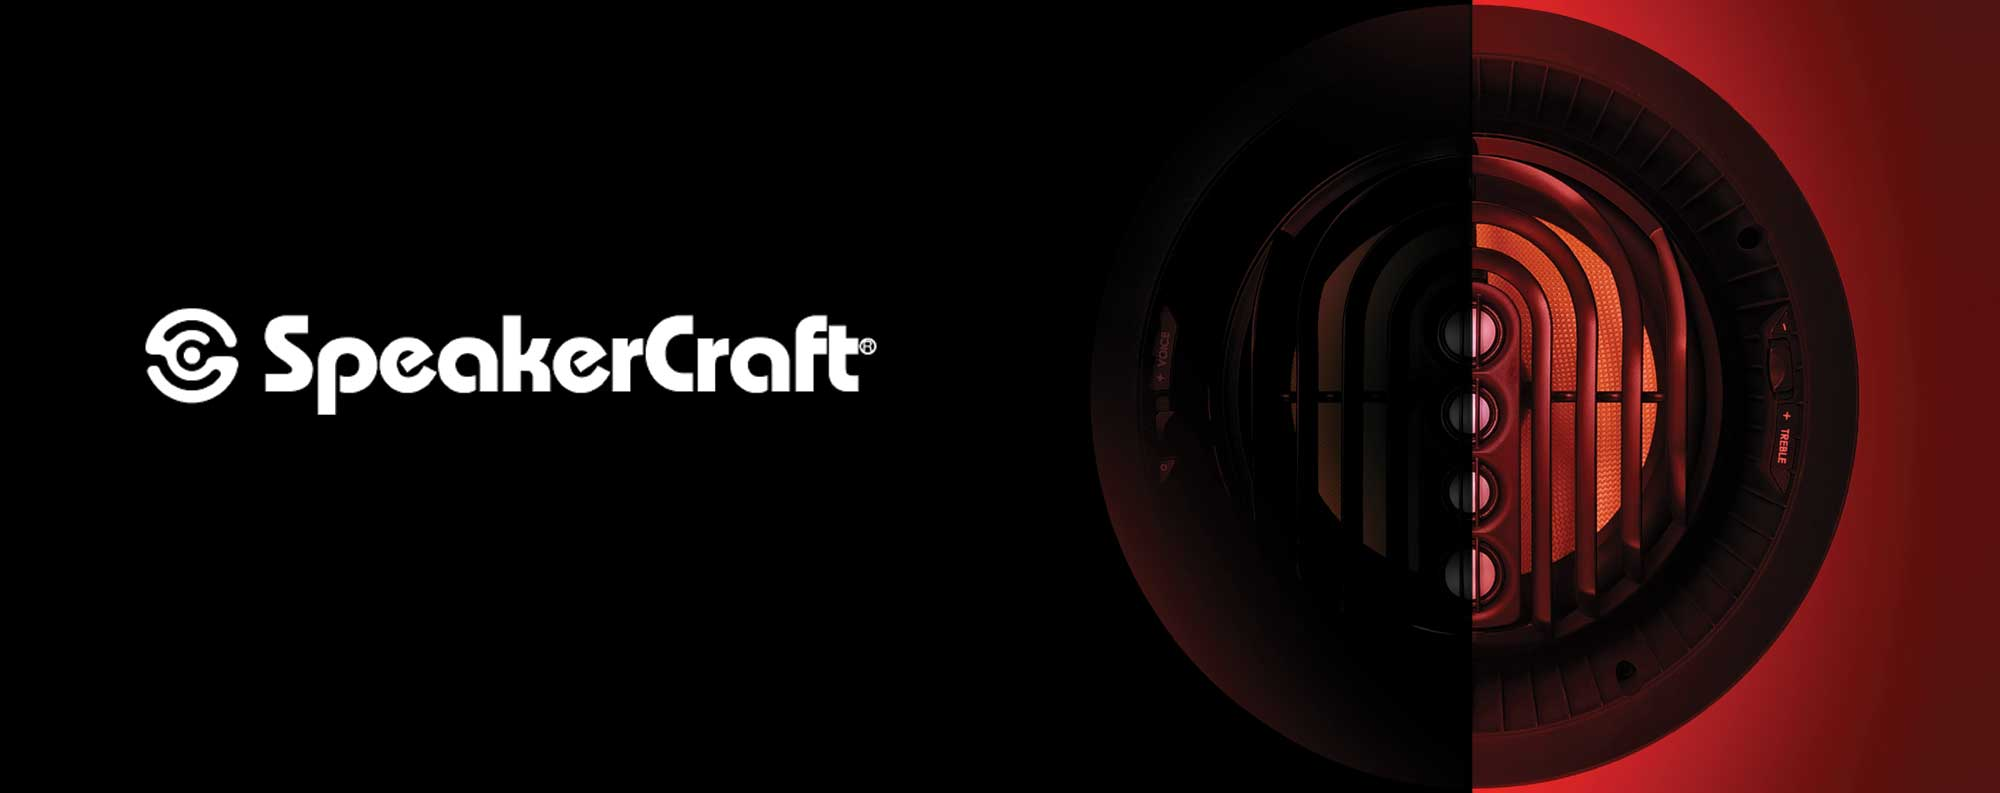 Speakercraft Speakers